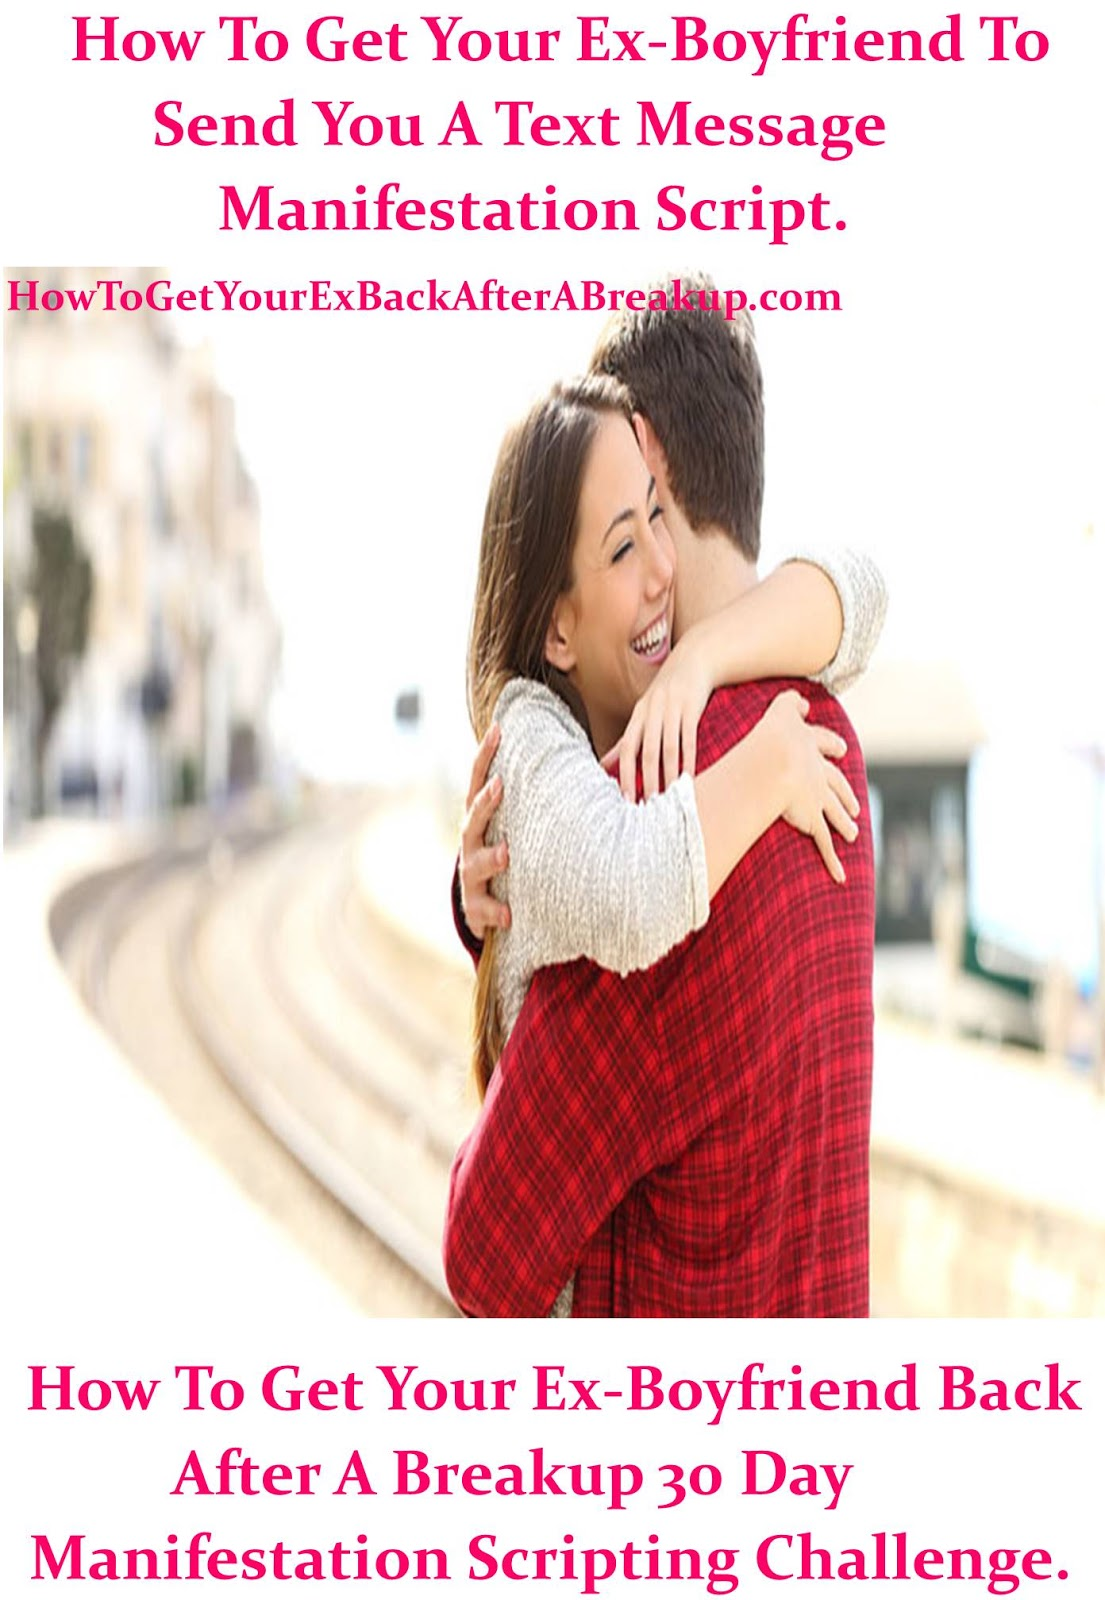 How To Get Your Ex Back After A Breakup: How To Get Your Ex